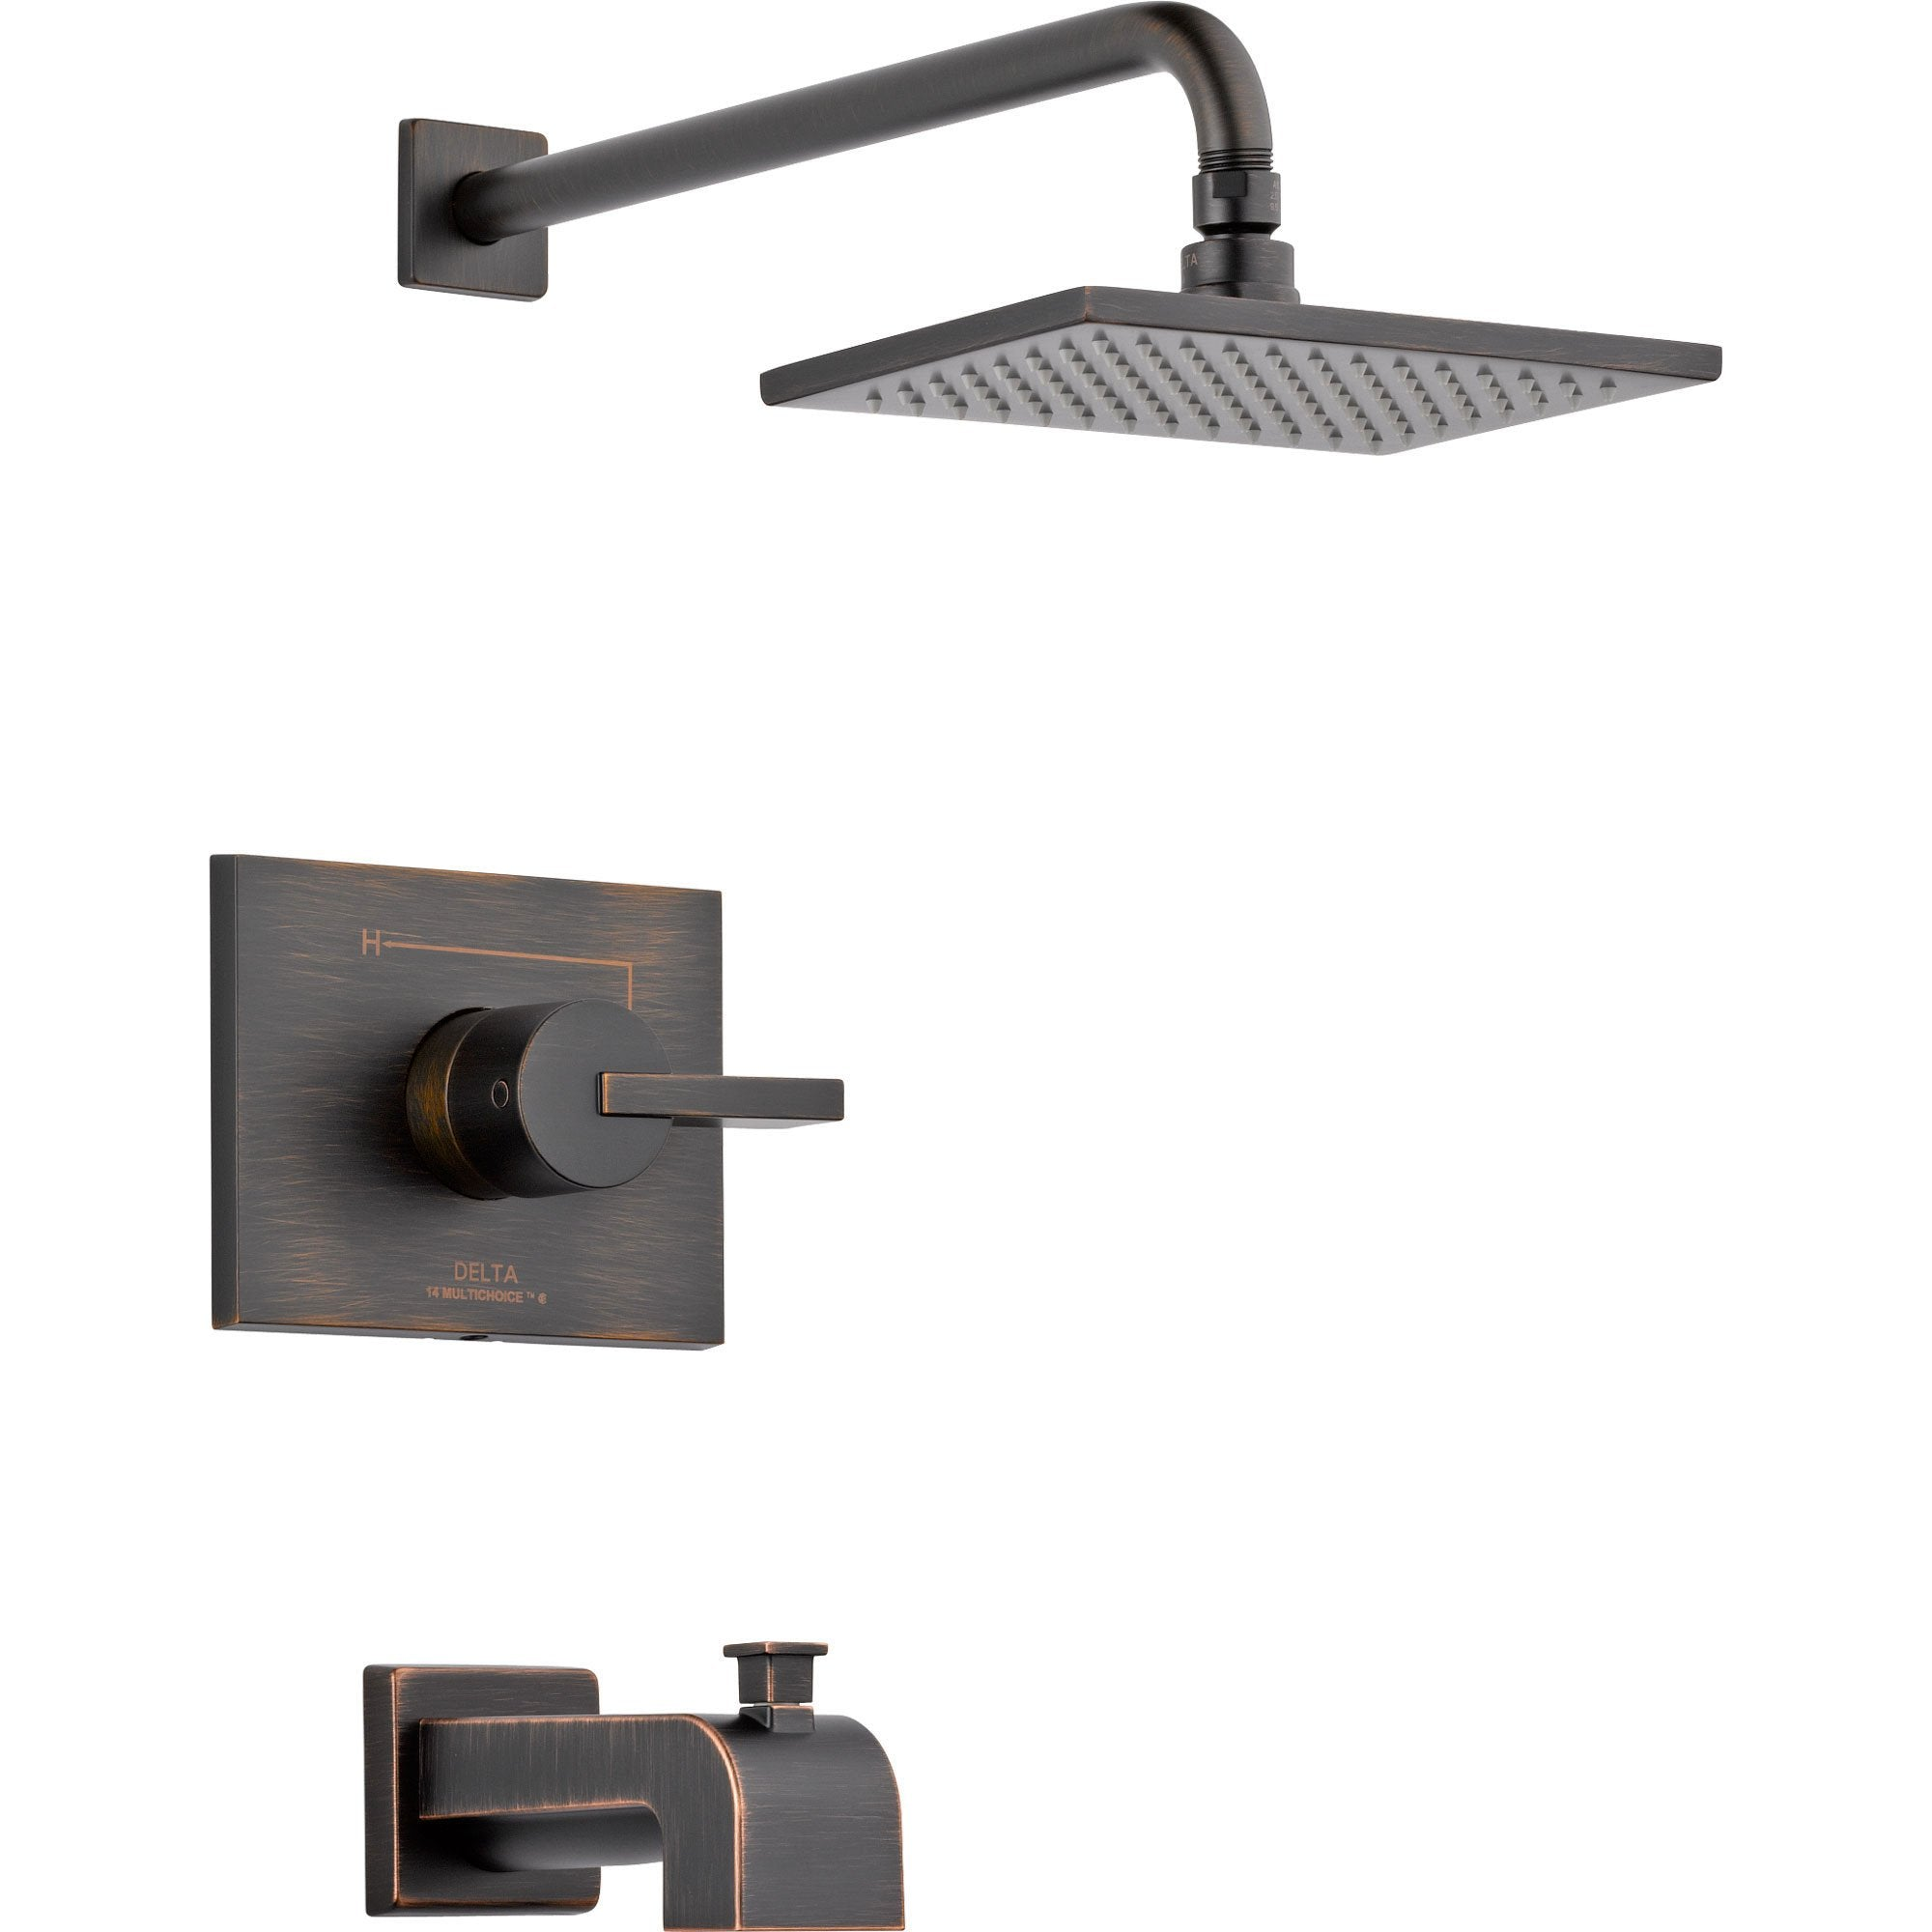 Delta Vero Modern Venetian Bronze Tub and Shower Combination Faucet Trim 555946